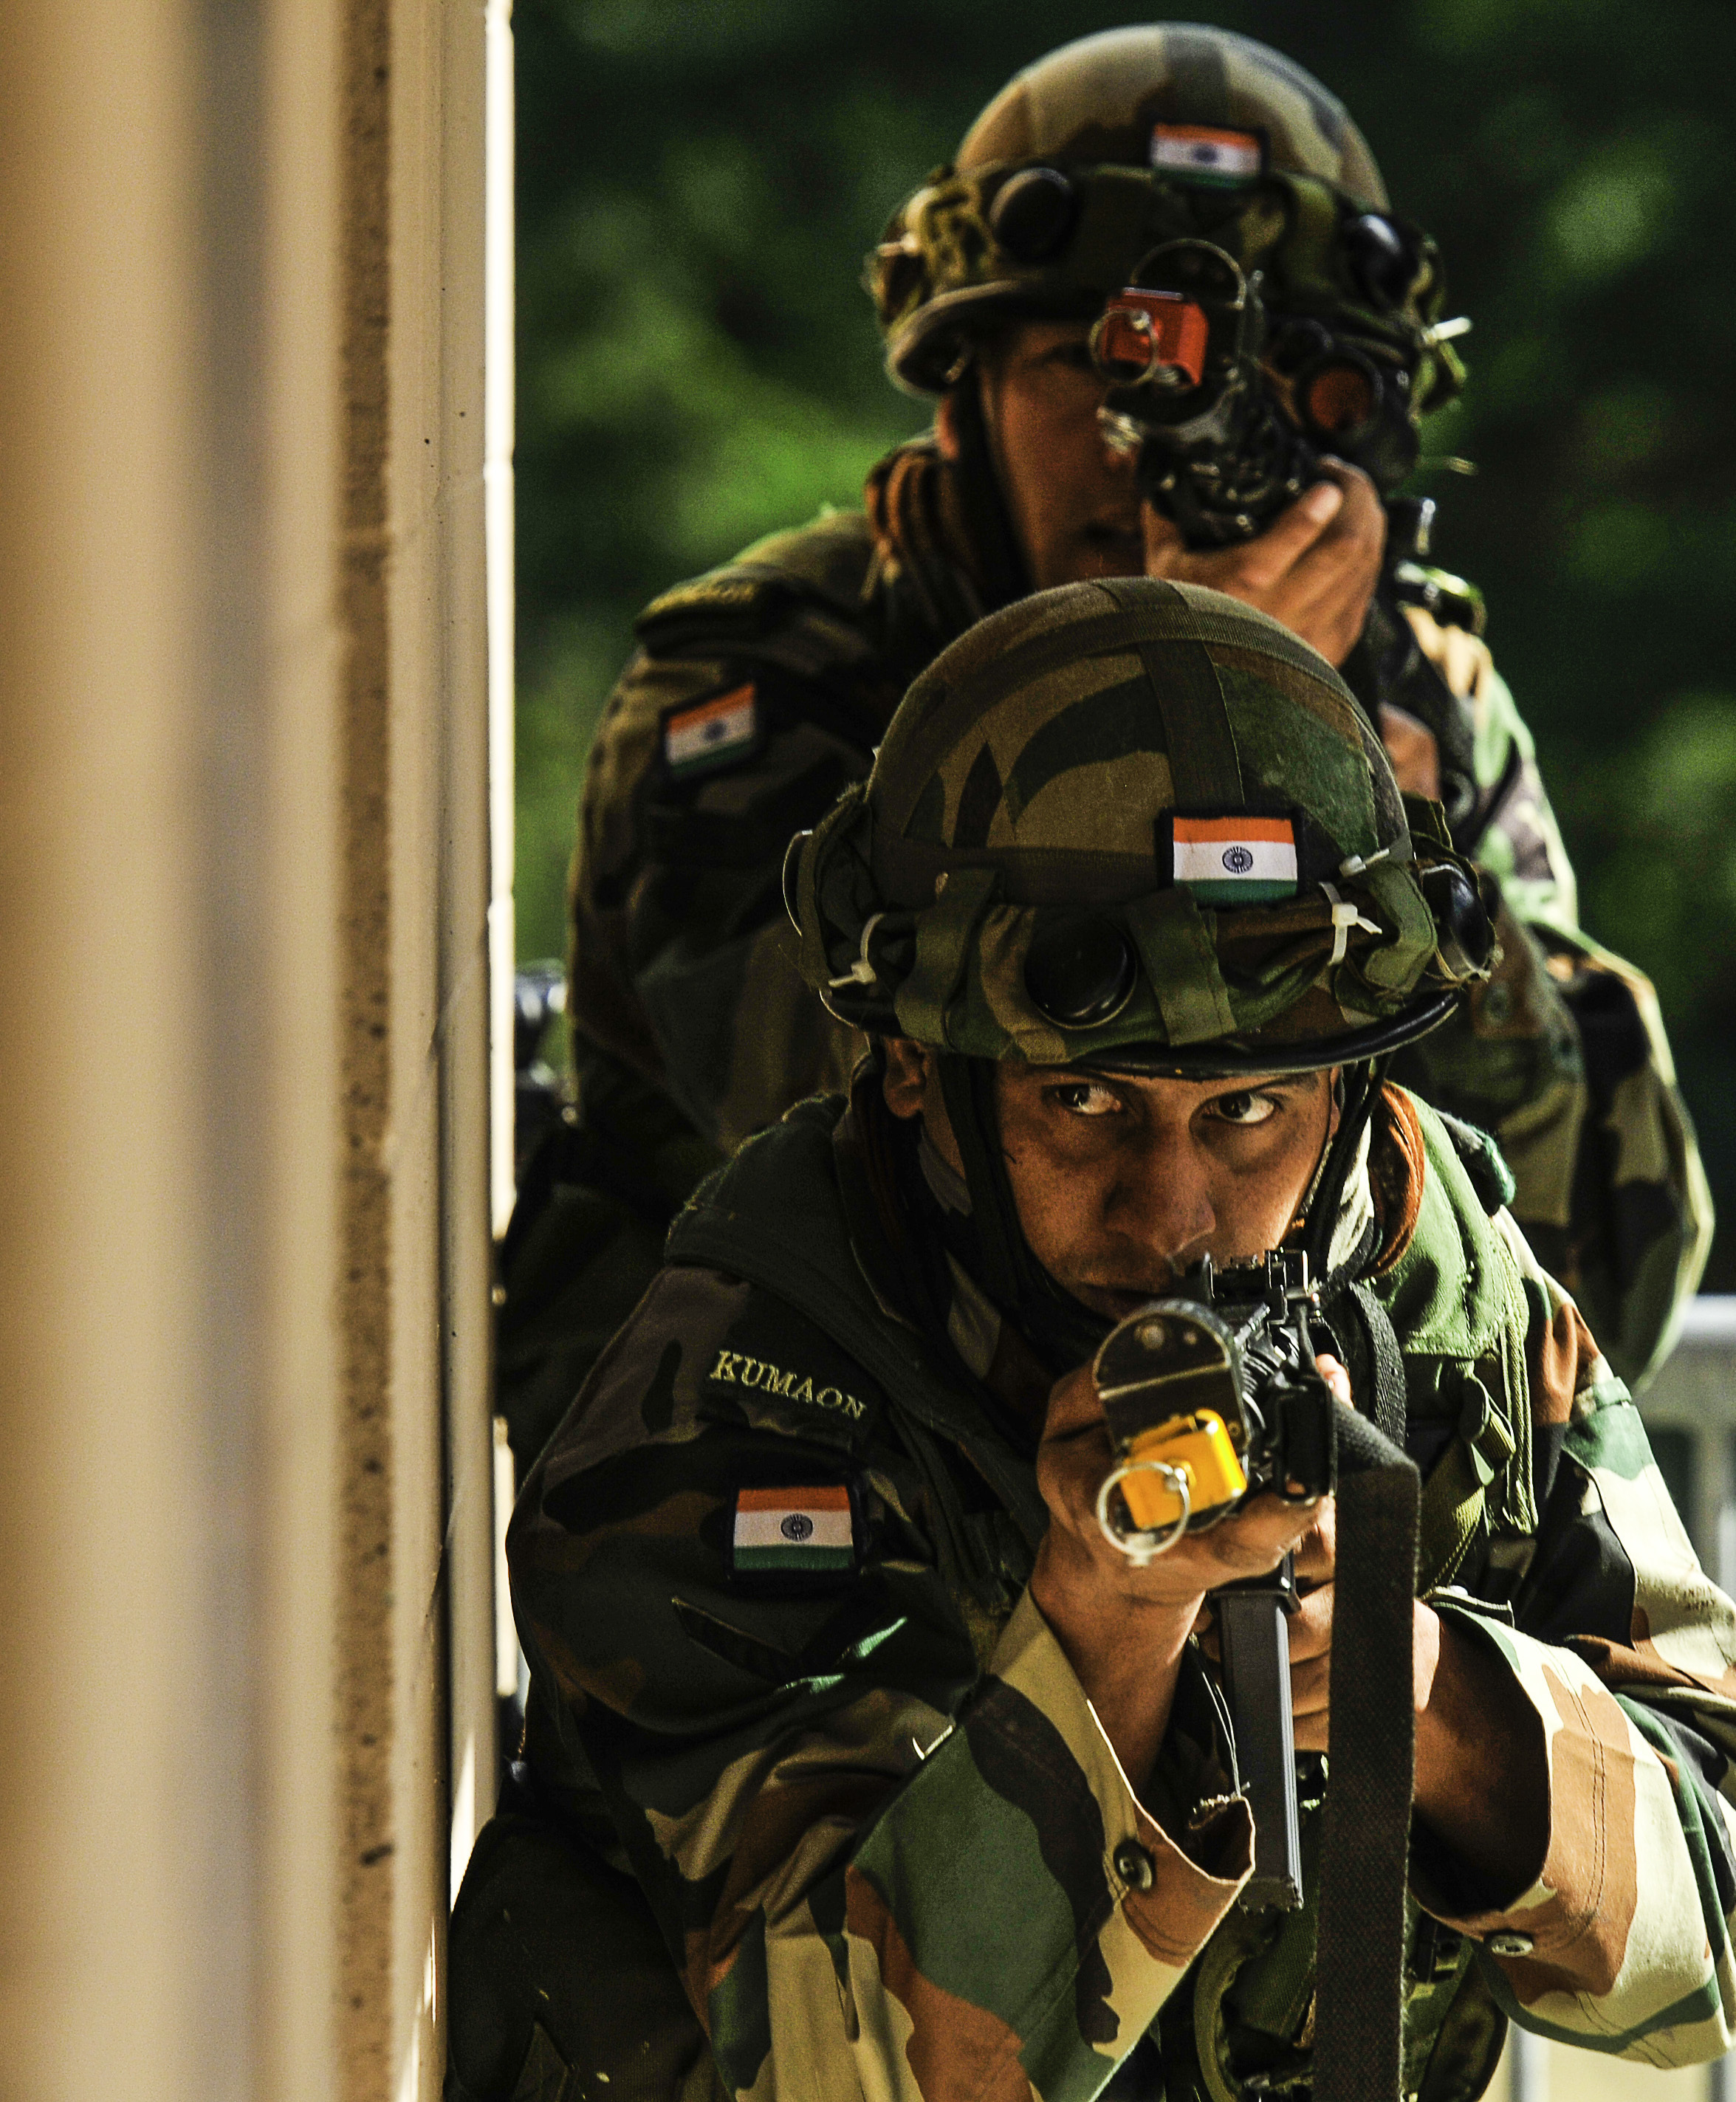 Some Sweet Shots Of The Indian Army From Yudh Abhyas 2015